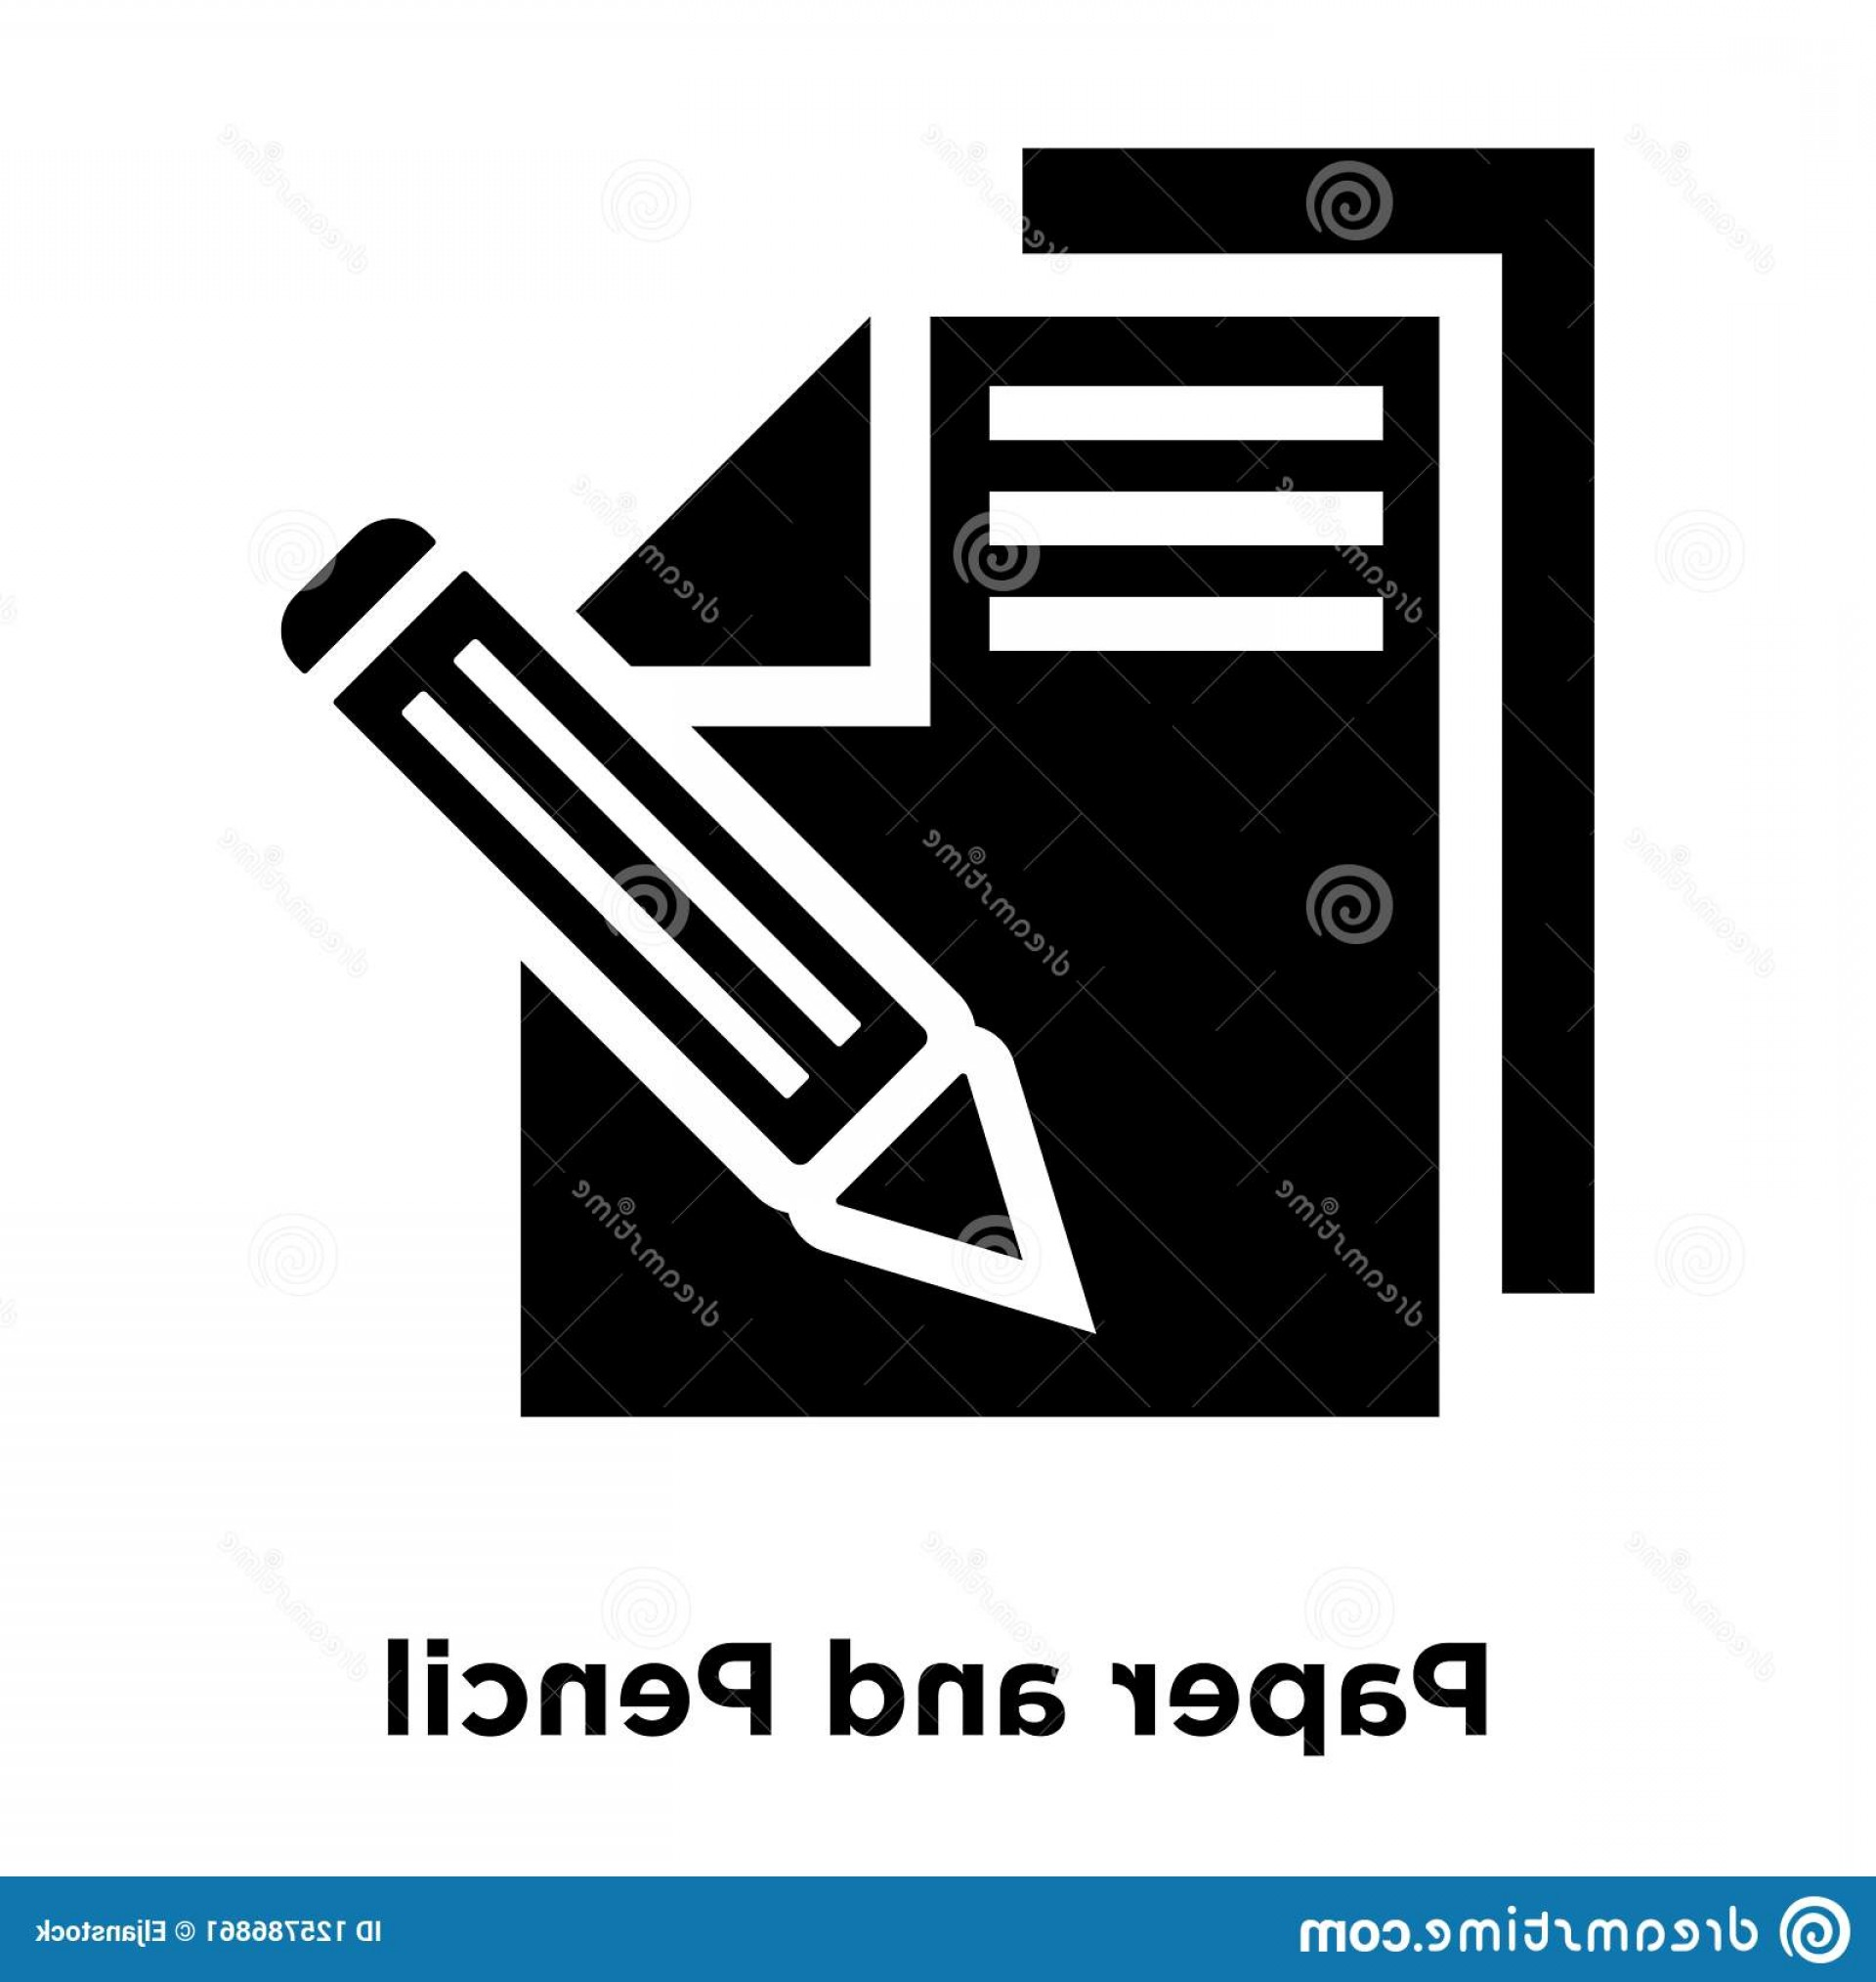 Paper And Pencil Icon Vector: Paper Pencil Icon Vector Isolated White Background Logo Concept Paper Pencil Sign Transparent Background Filled Image